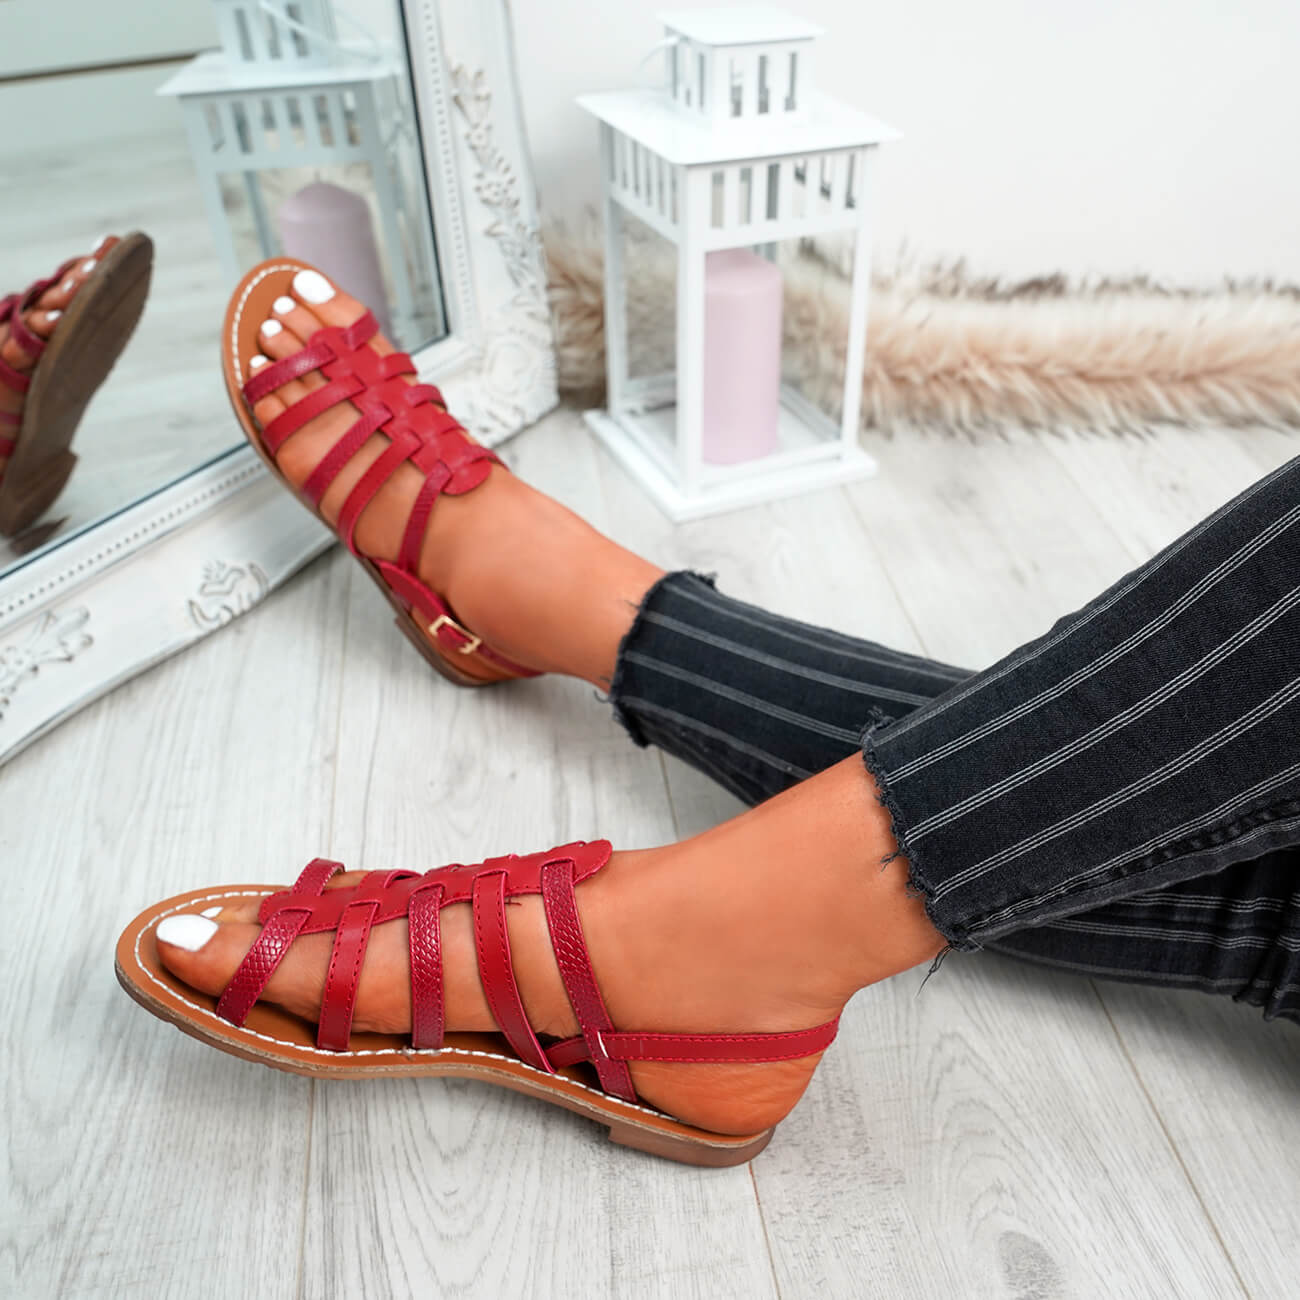 WOMENS-LADIES-BUCKLE-STRAP-FLAT-SUMMER-SANDALS-CASUAL-HOLIDAY-COMFY-SHOES-SIZE thumbnail 28